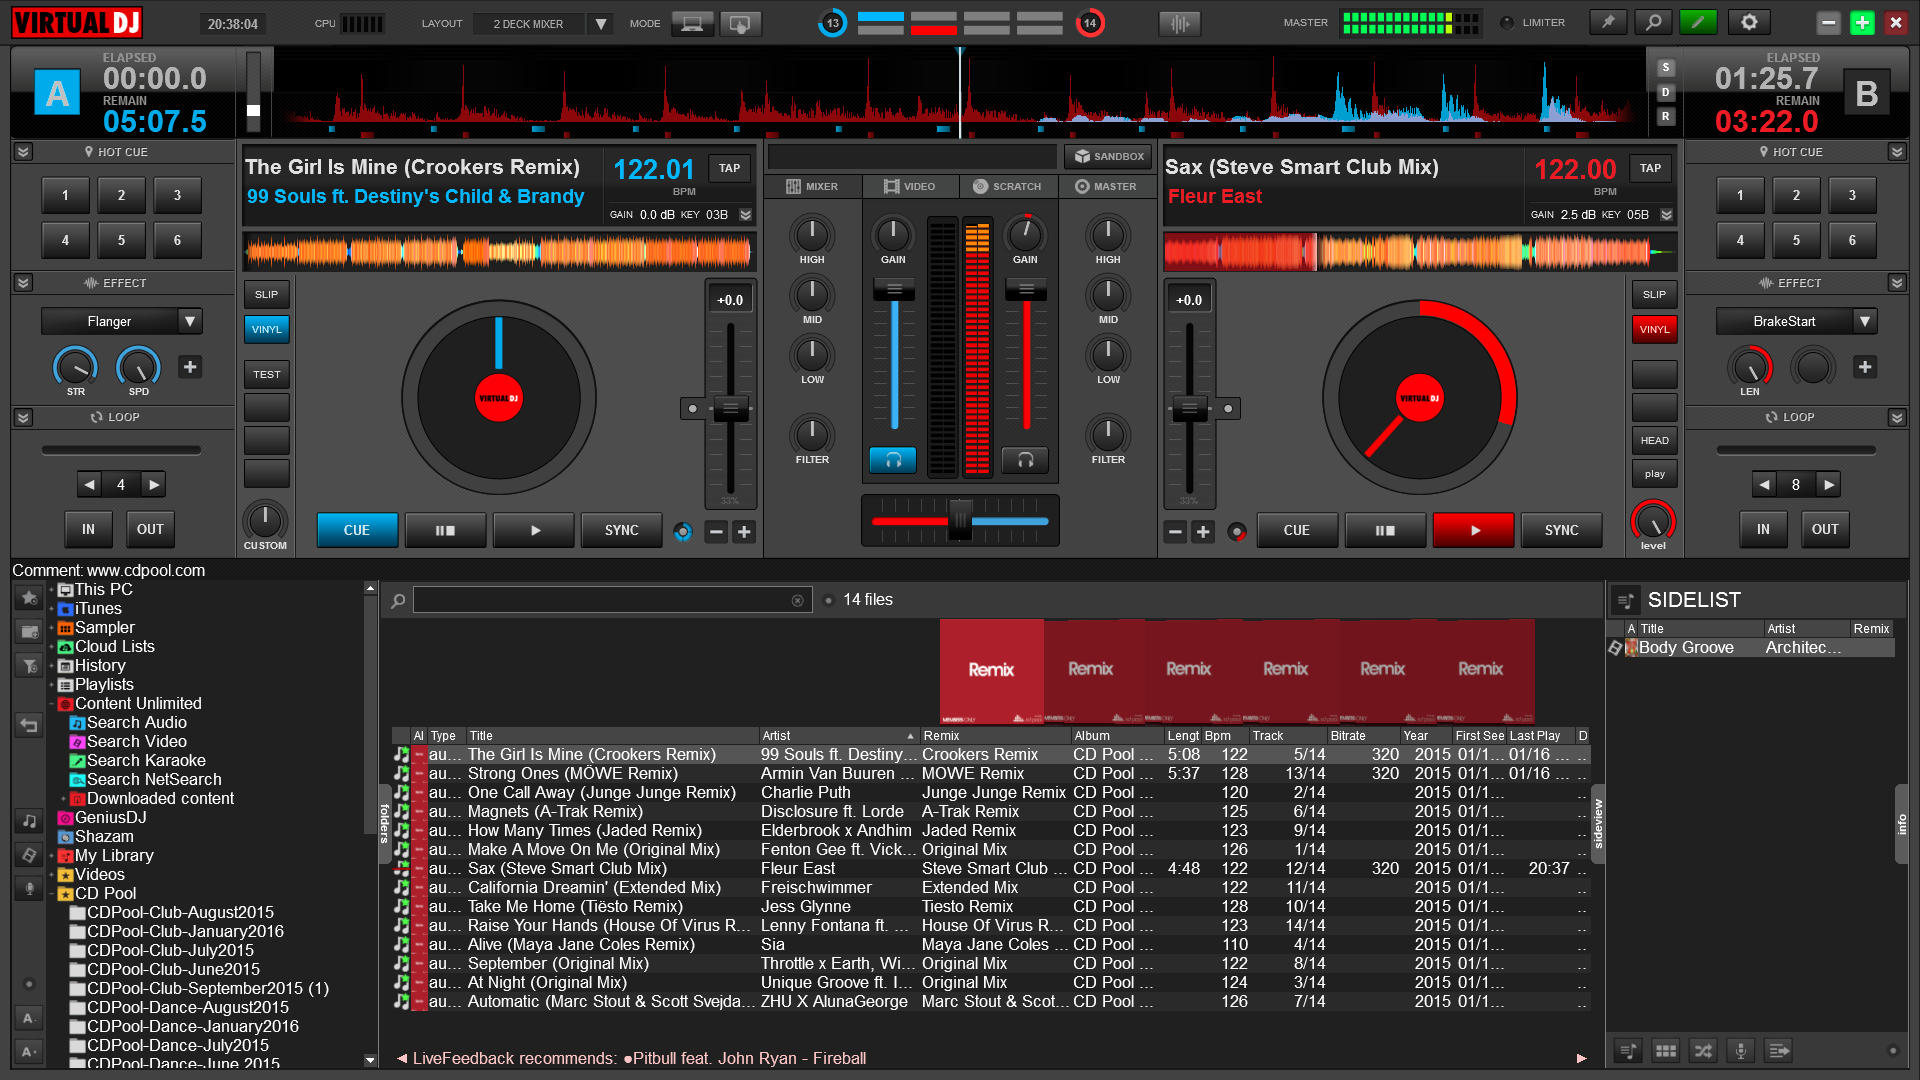 virtual dj 5.0 gooofull